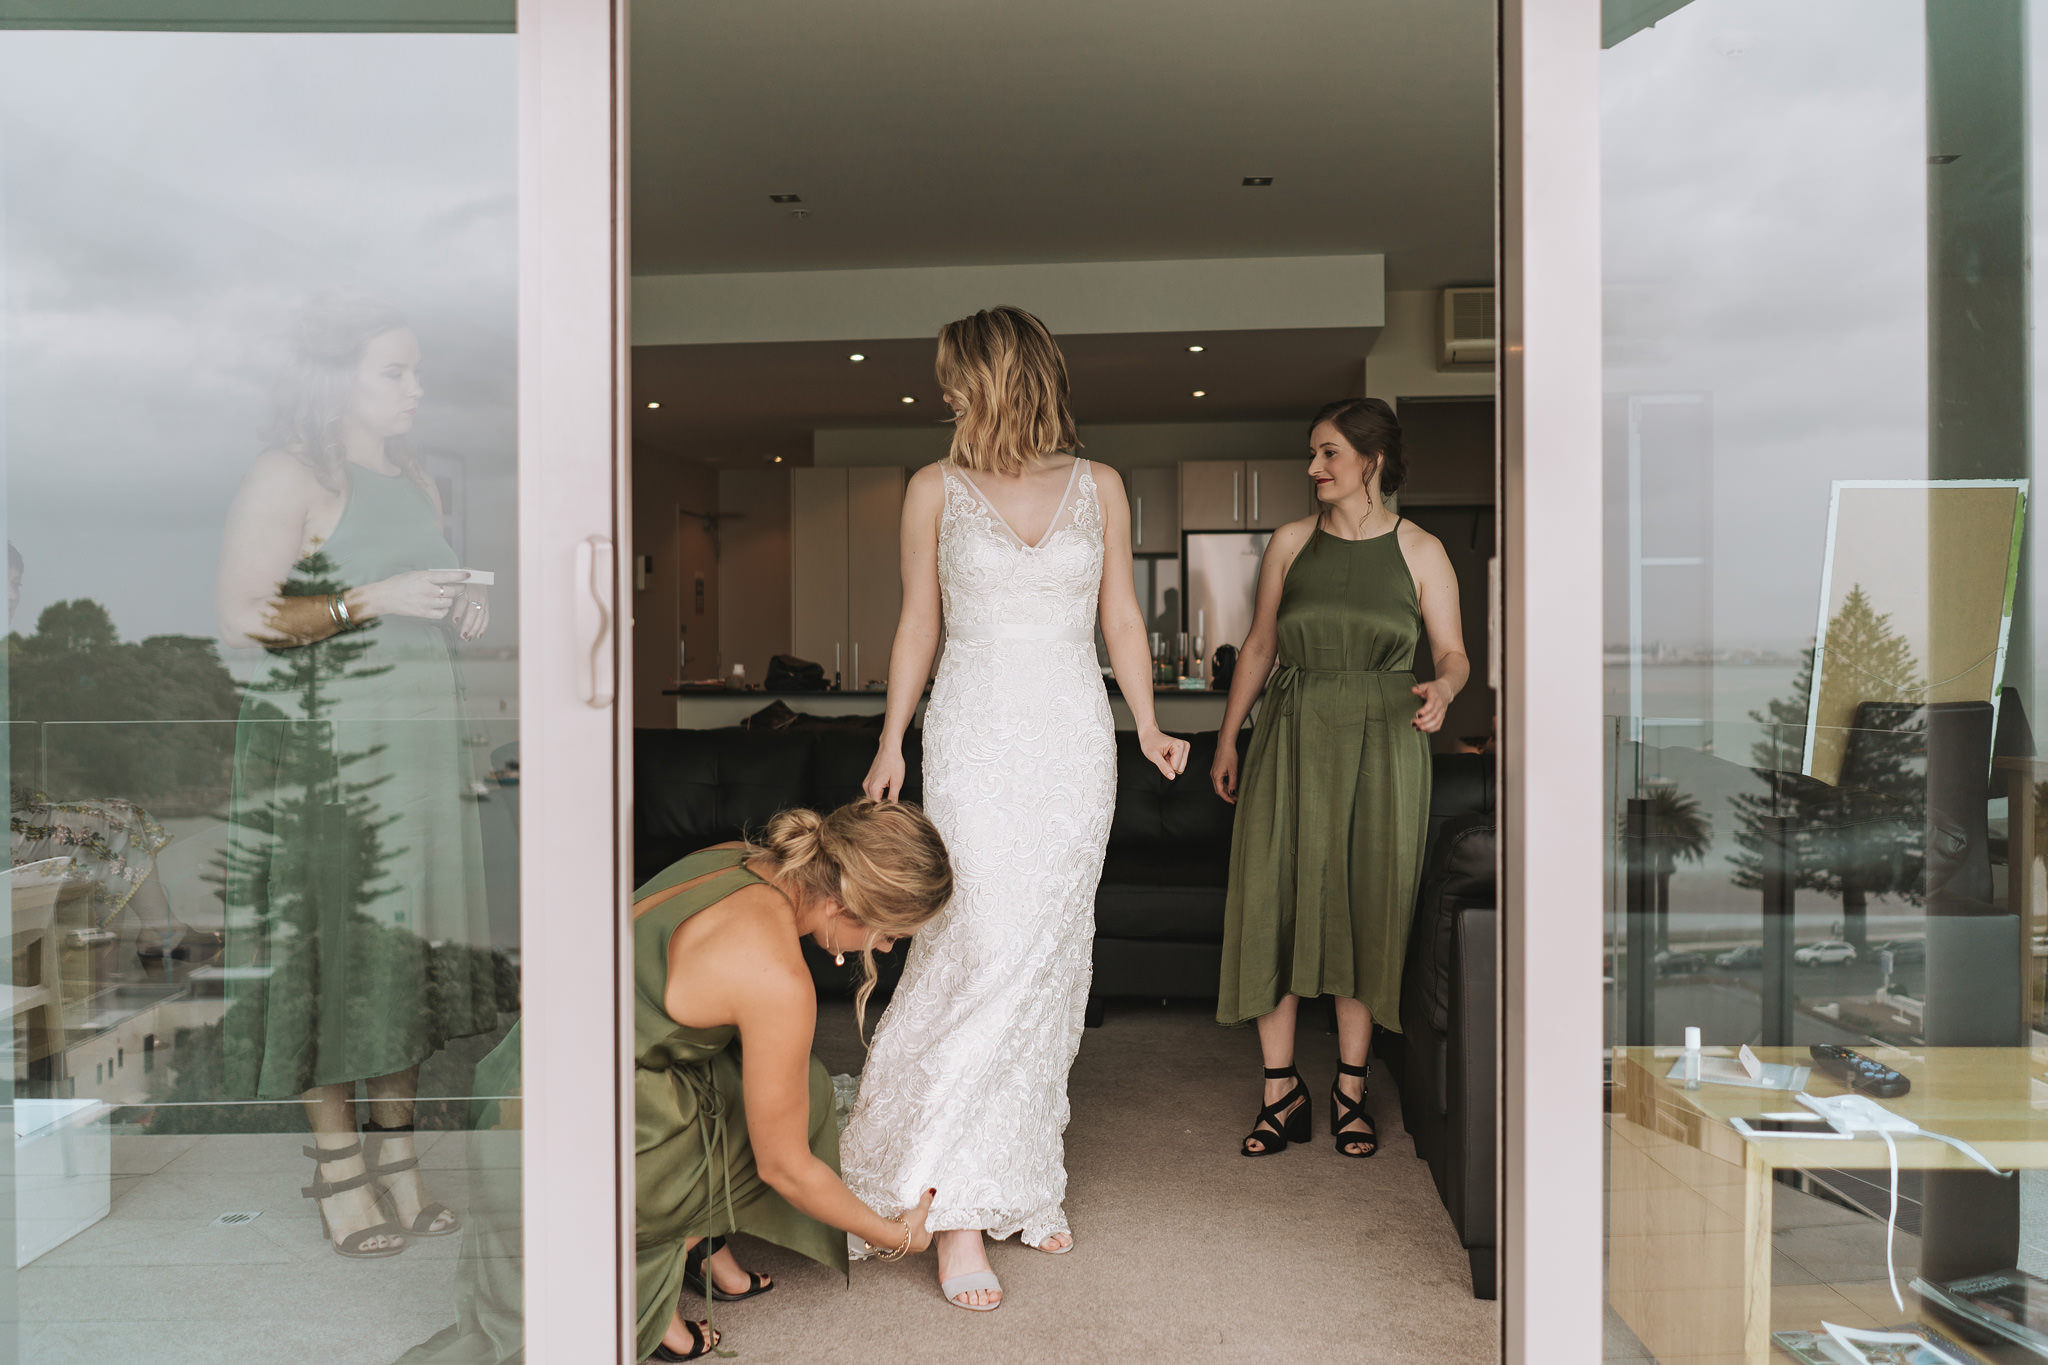 newfound-s-a-tauranga-new-zealand-wedding-photography-113